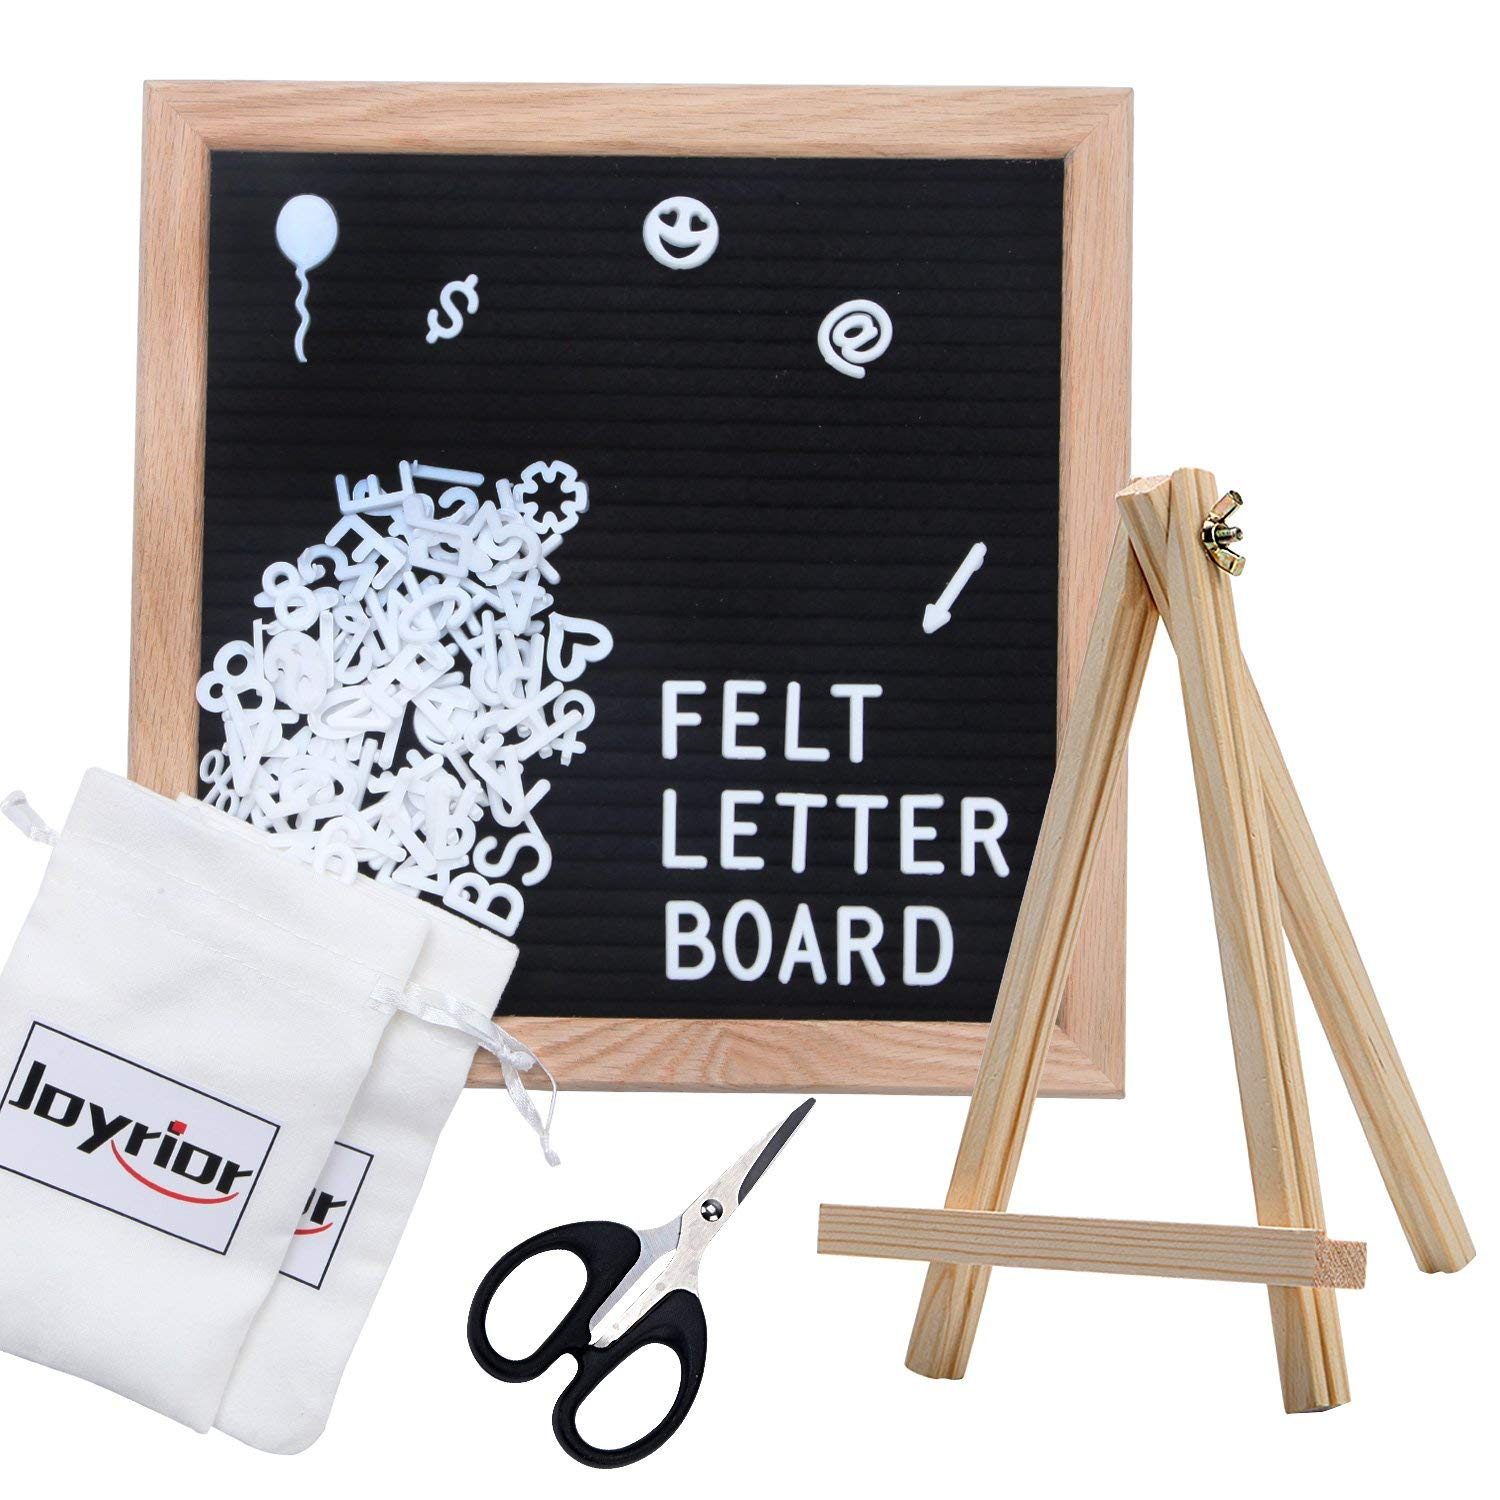 Premium Black Felt Letter Board 10x10 Inches. Changeable Letter Board with 354 White Plastic Letters + Oak Frame + Sawtooth Hanger + Wooden Tripod Stand + Scissors + 2 Drawstring Pouches